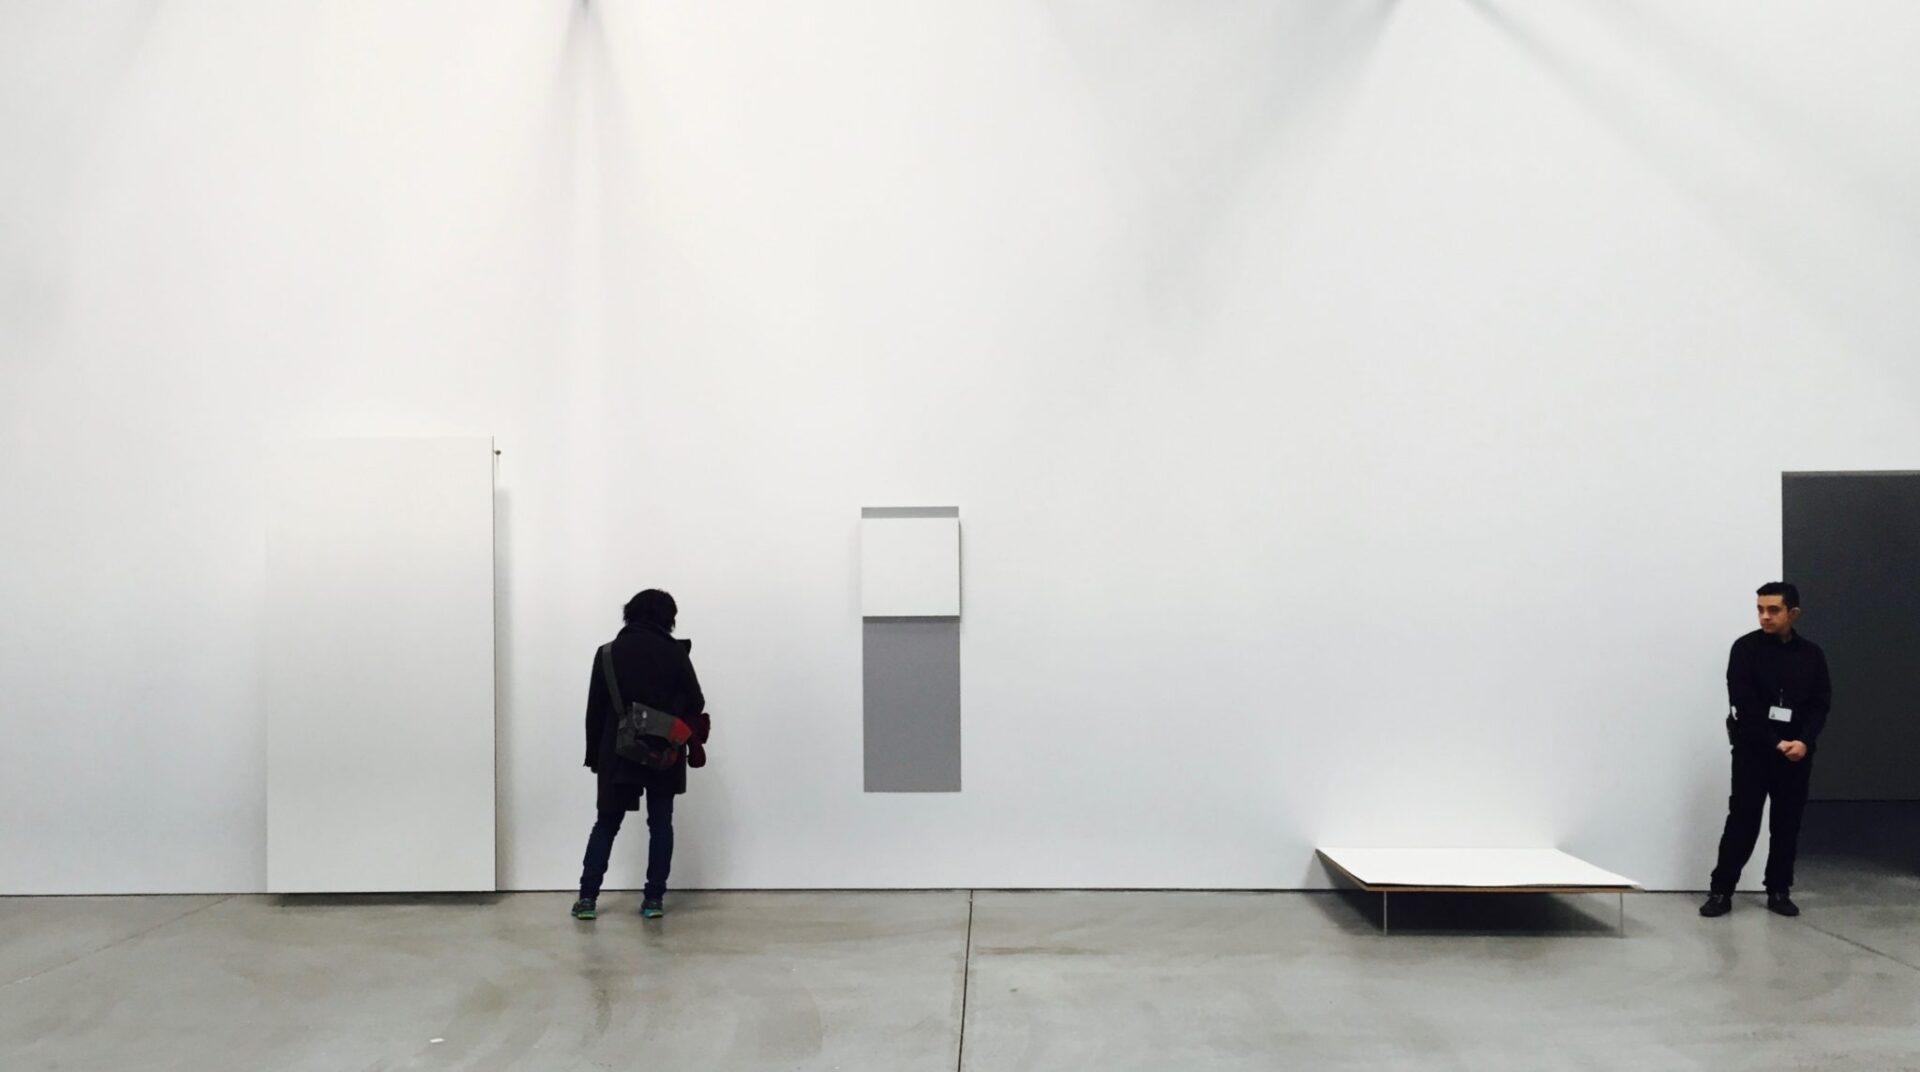 Robert Ryman. Gallery 2, installation view of the north wall. This selection of works ranging from 1983 to 2002 focuses on Ryman's dramatization of the relation between painting and gallery wall.